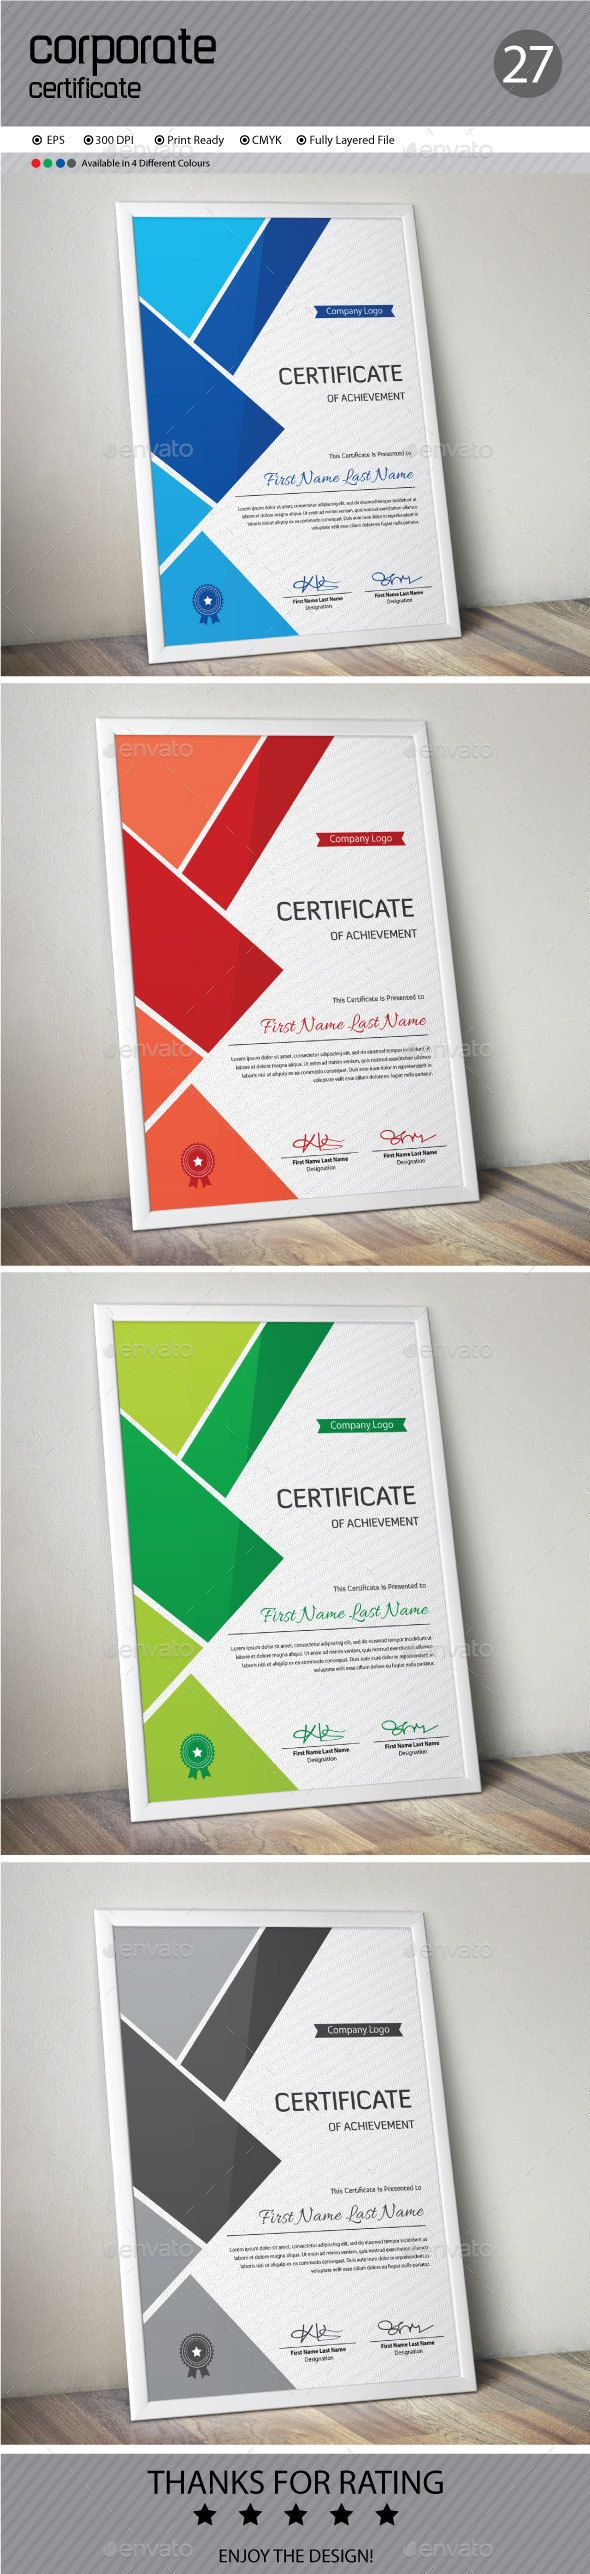 Certificate Template Vector EPS. Download here: http://graphicriver.net/item/certificate/13339597?ref=ksioks